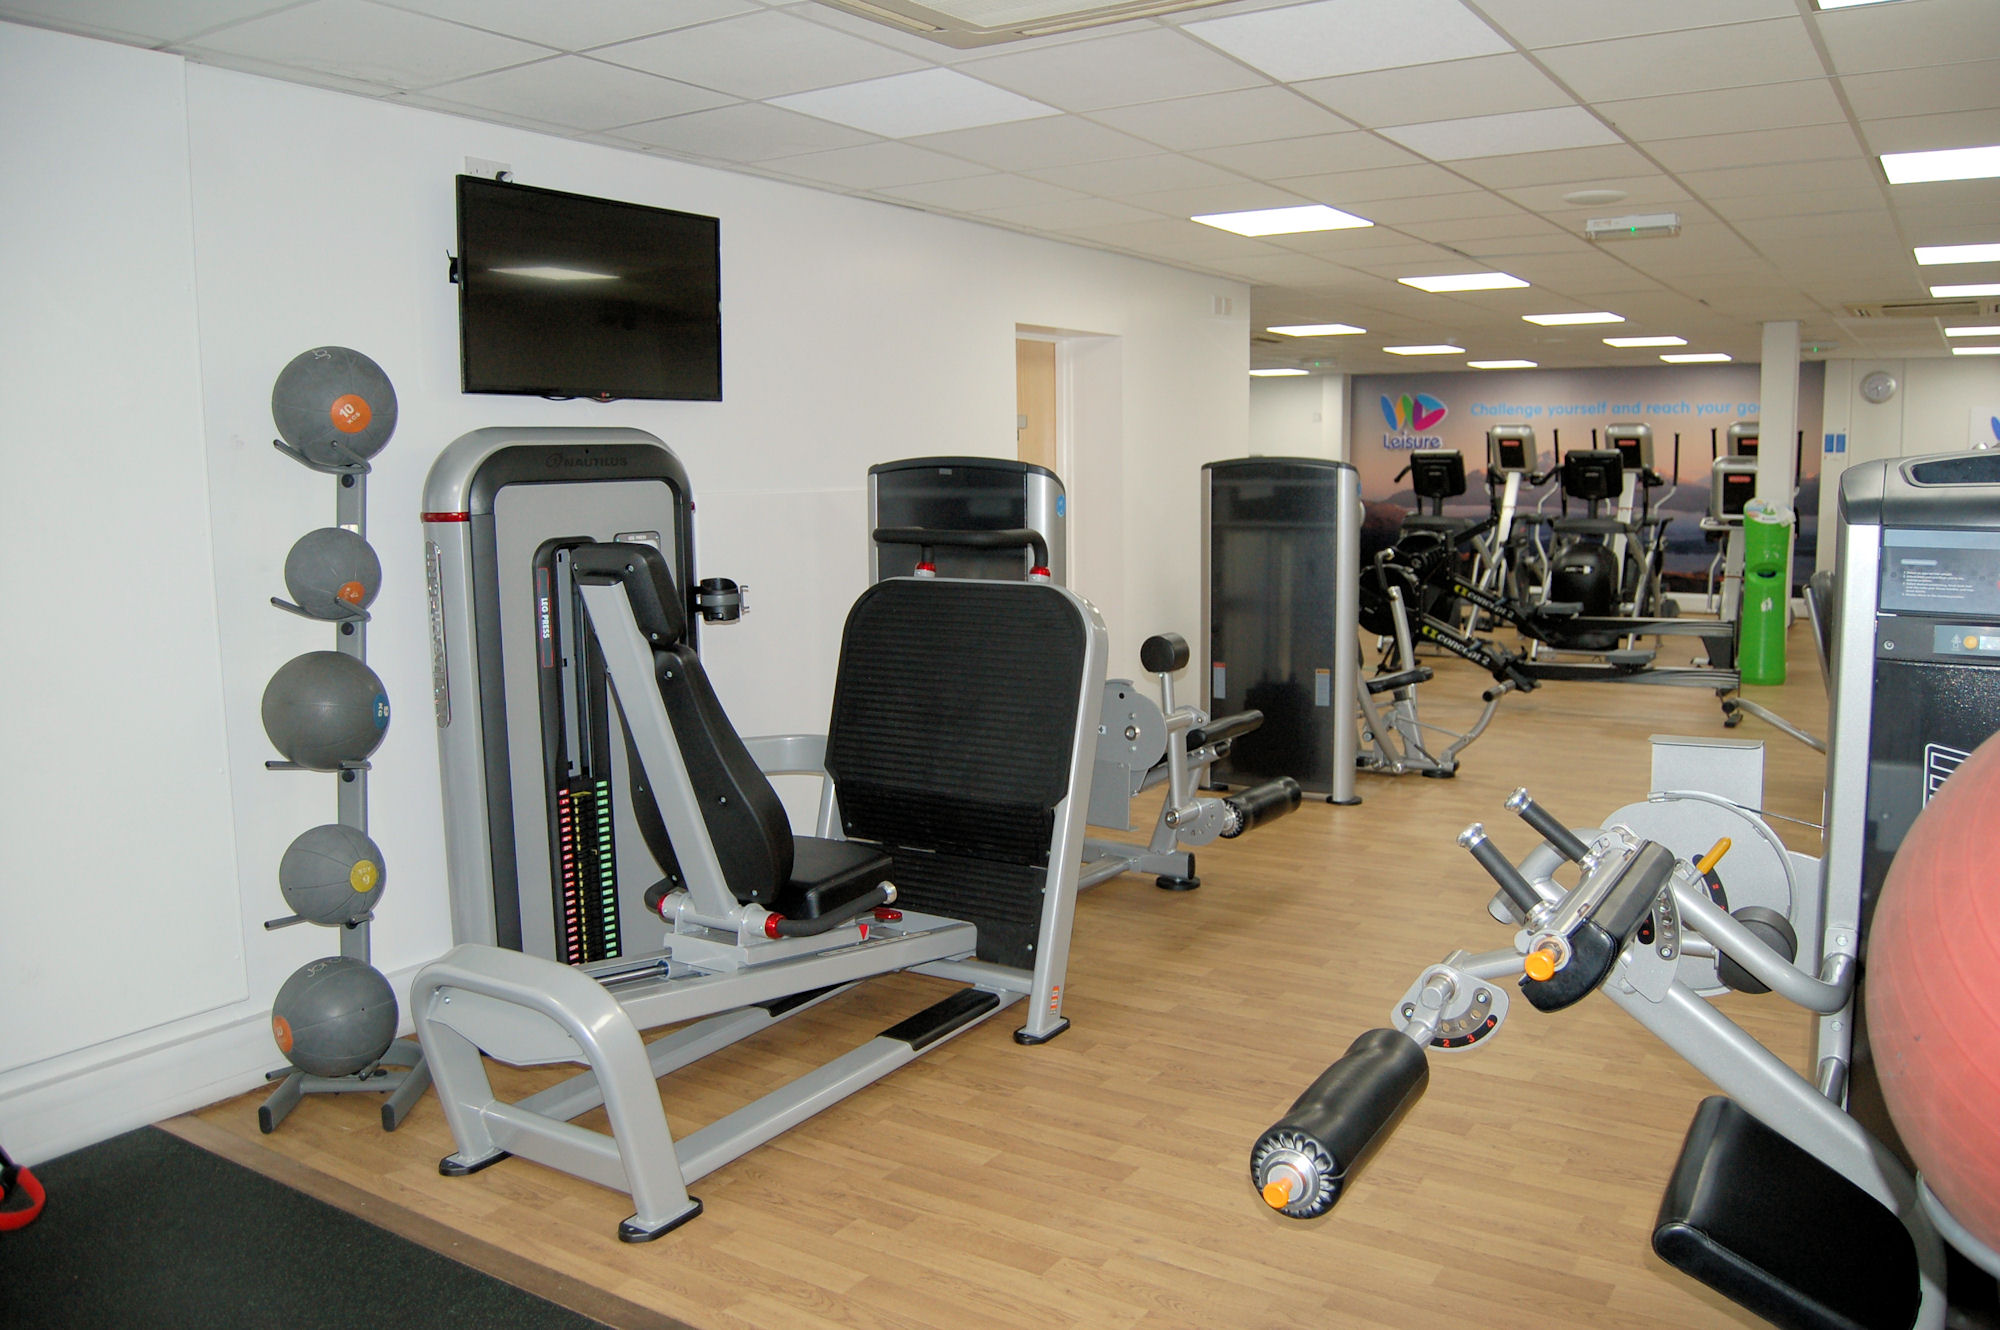 image of Fitness and gym equipment